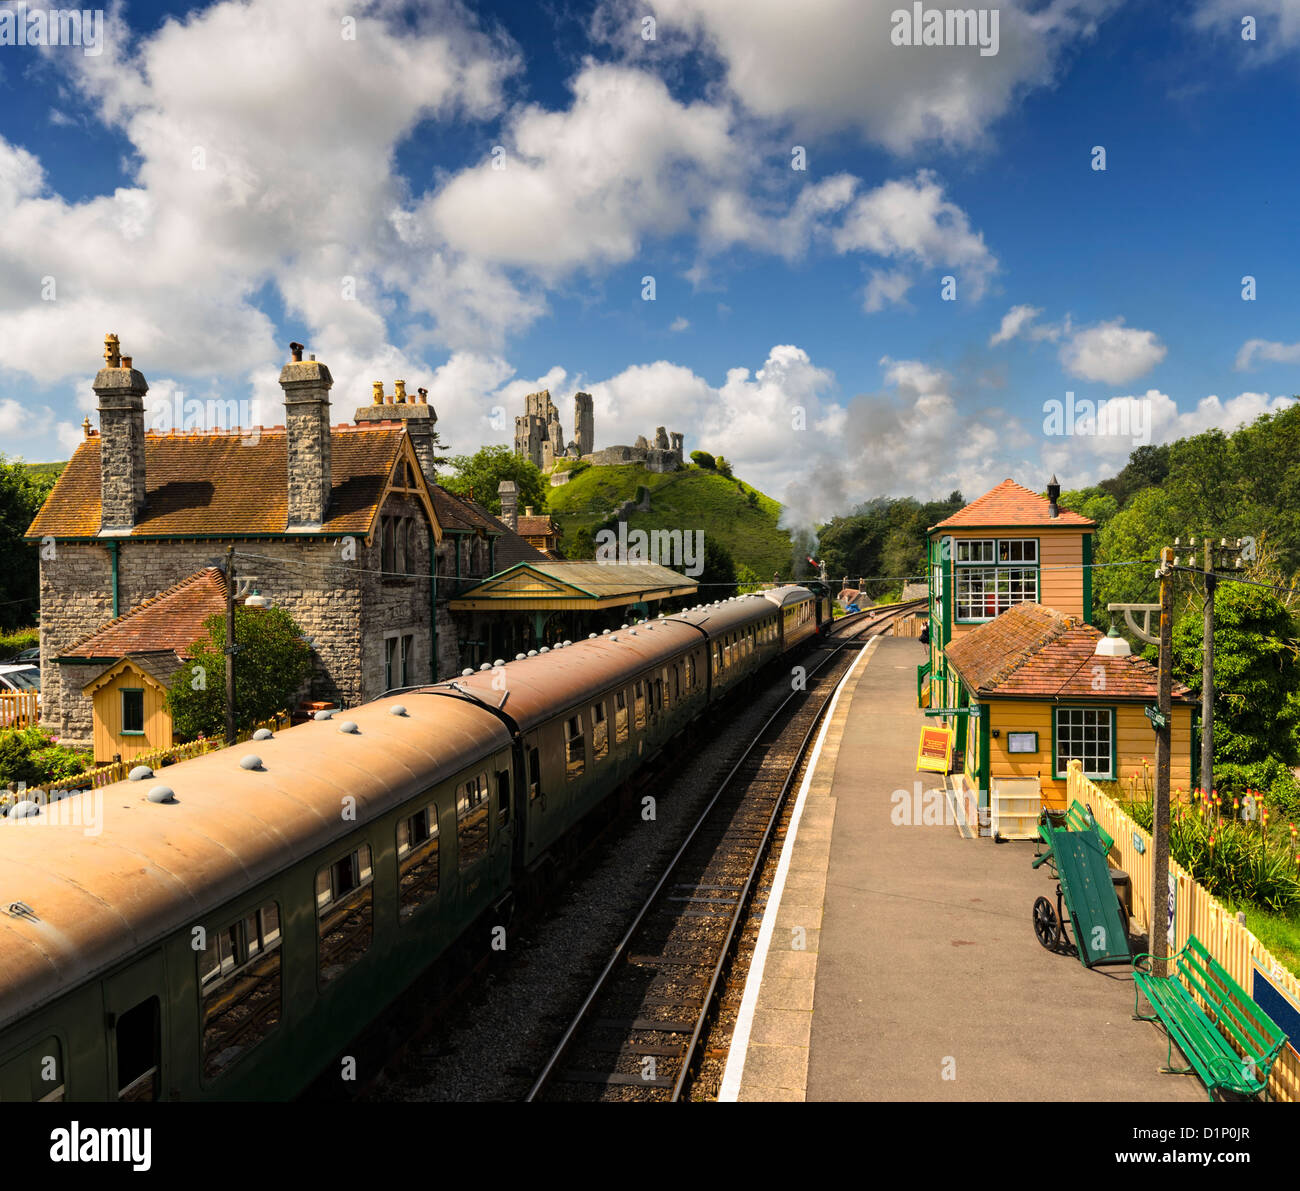 A steam train pulls in to the station at Corfe Castle in Dorset Stock Photo